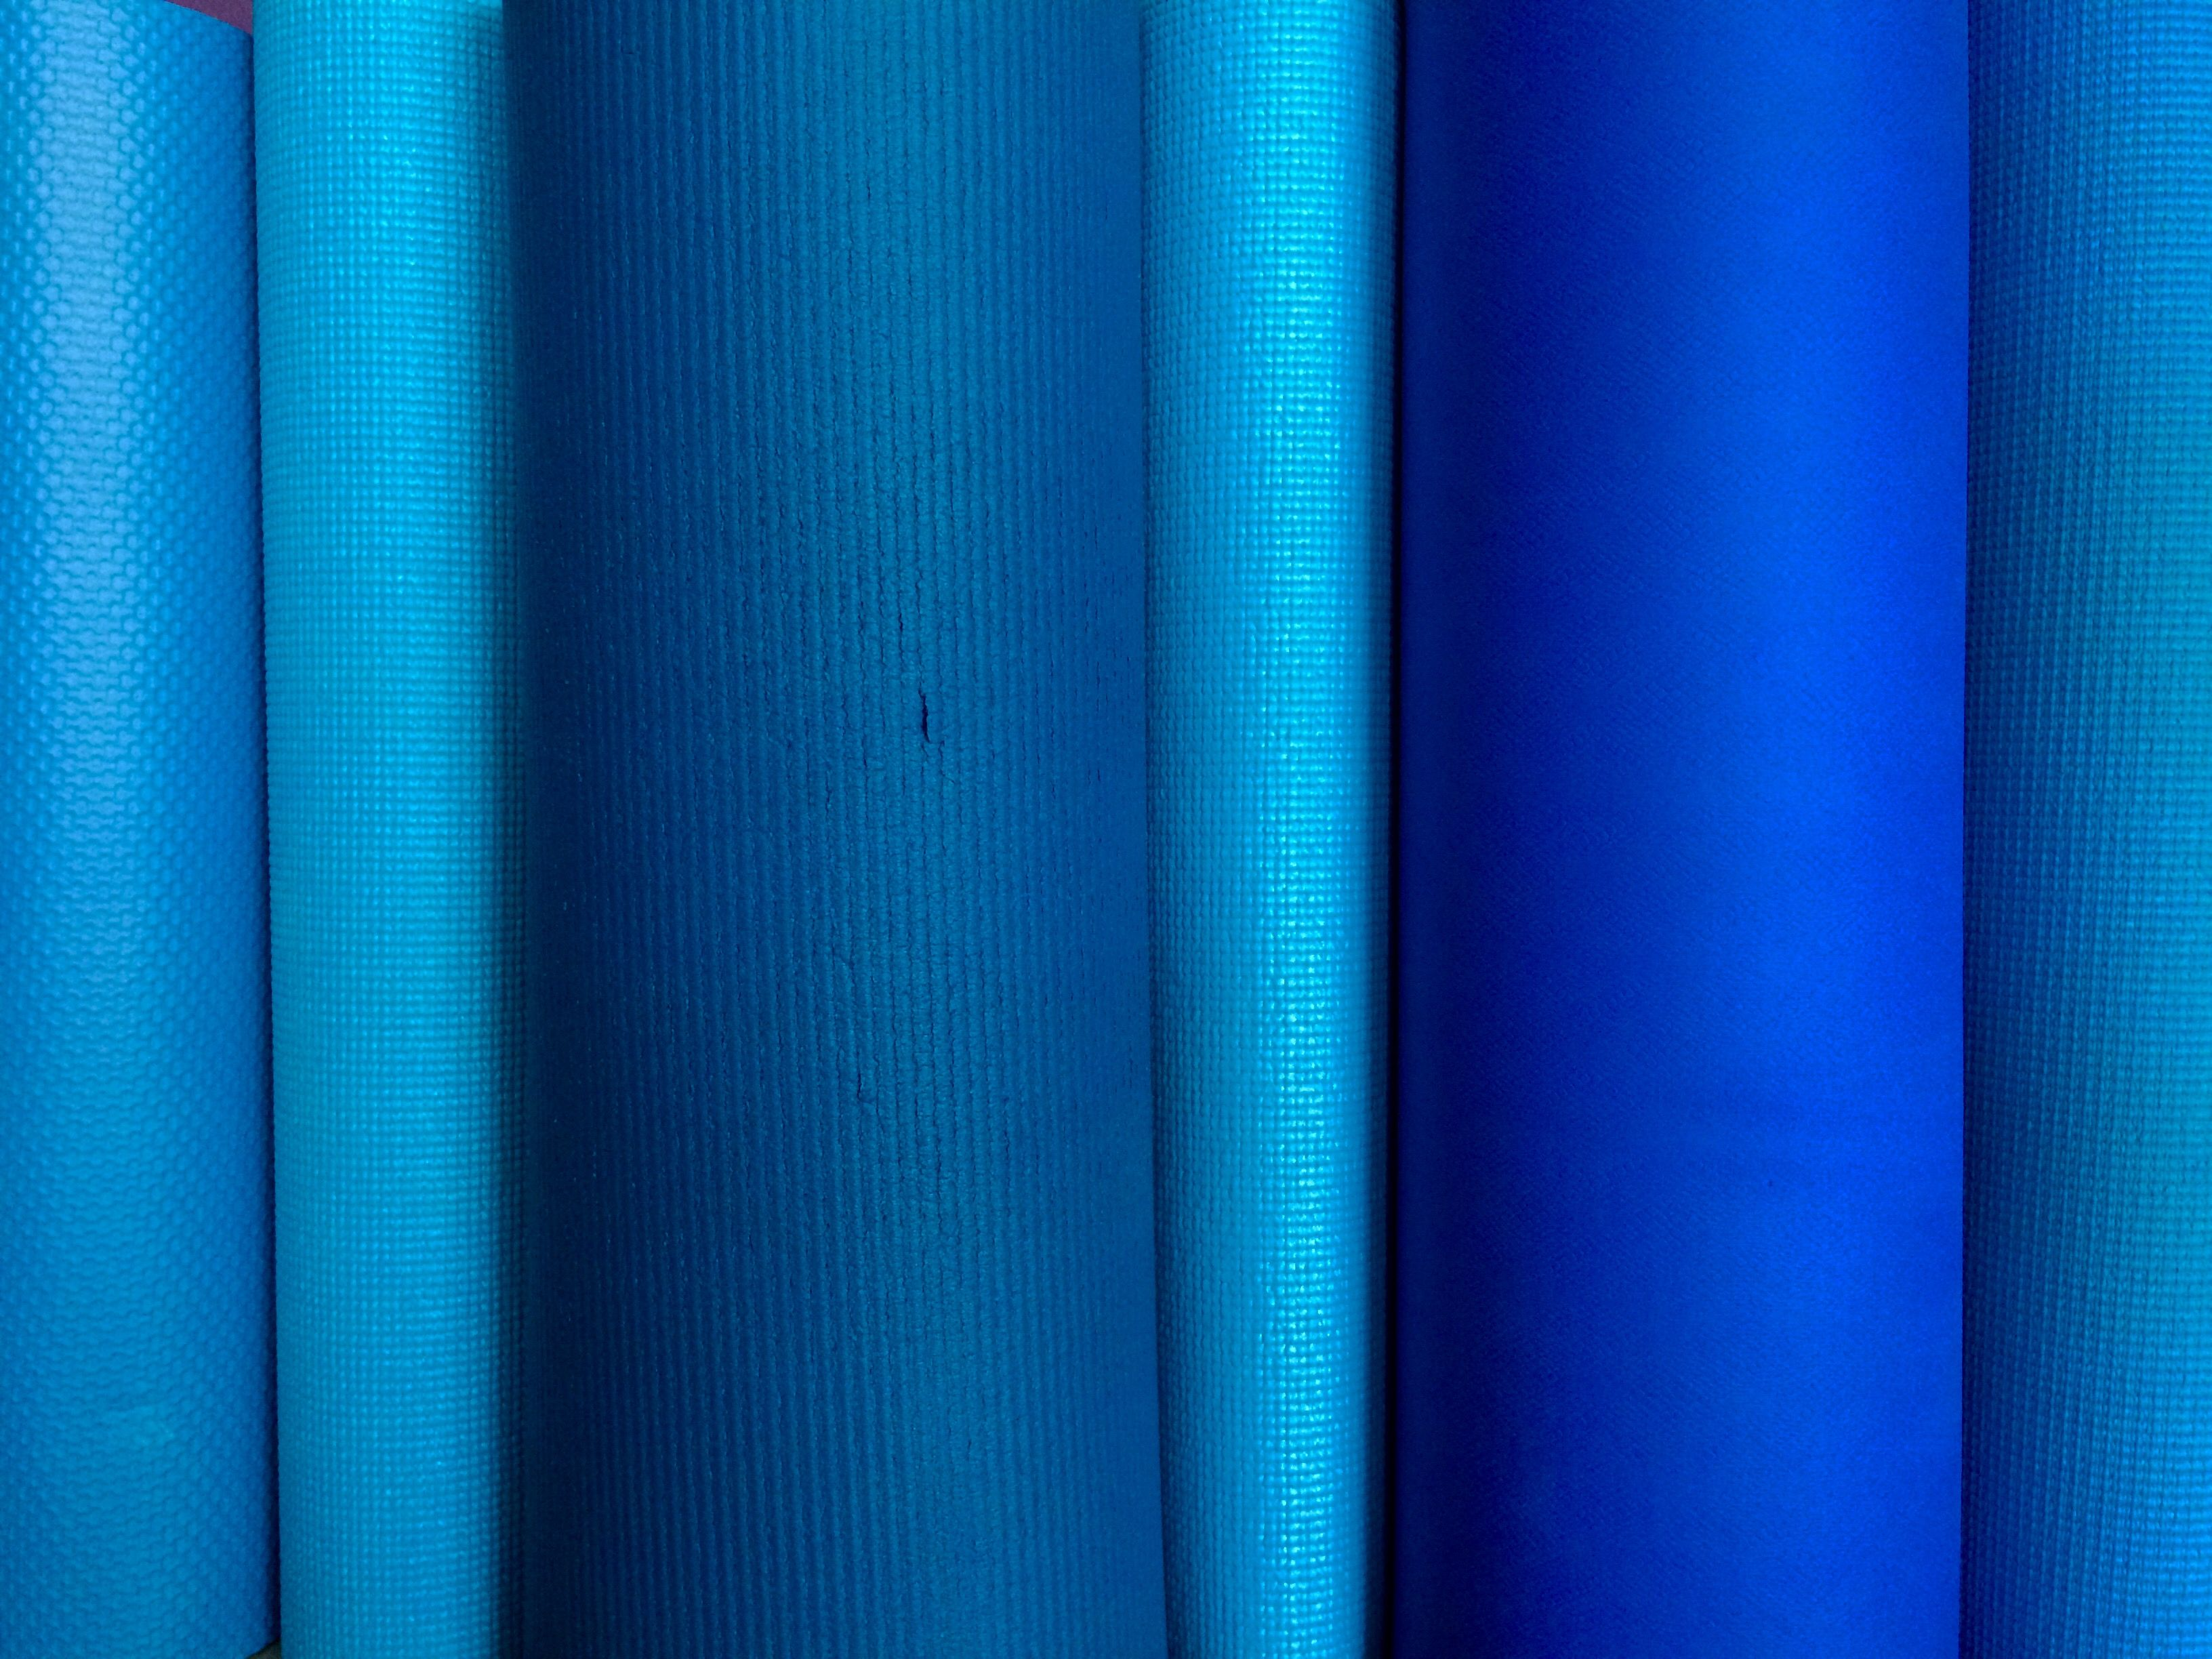 Blue color meanings how to use shades of blue in design for Shades of blue colours